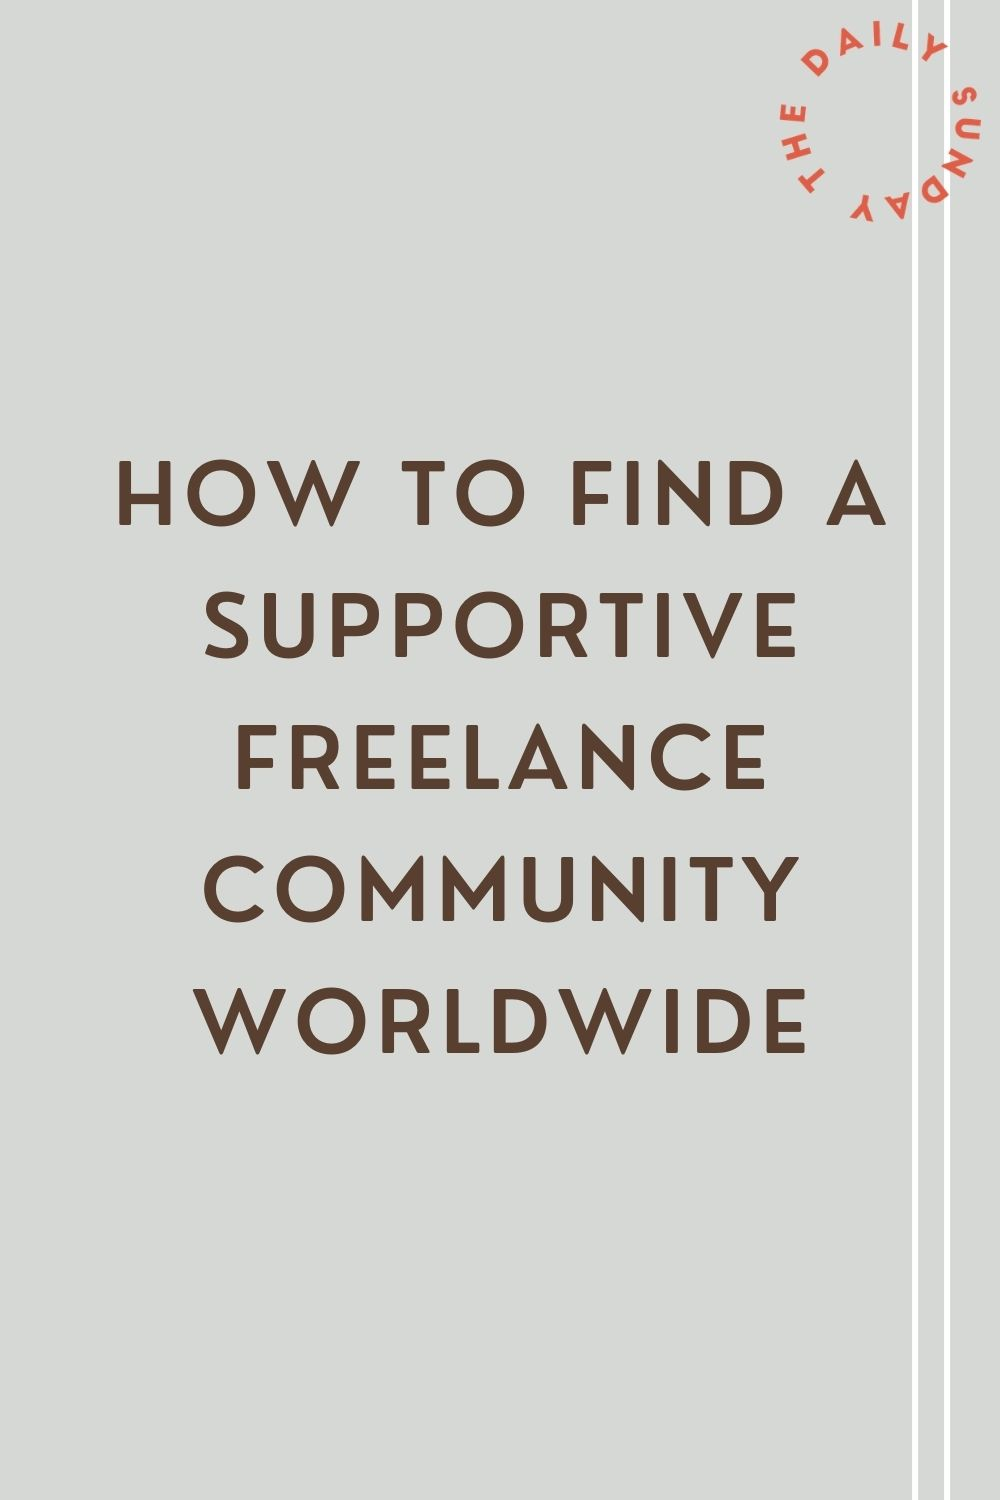 How to find a supportive freelance community worldwide